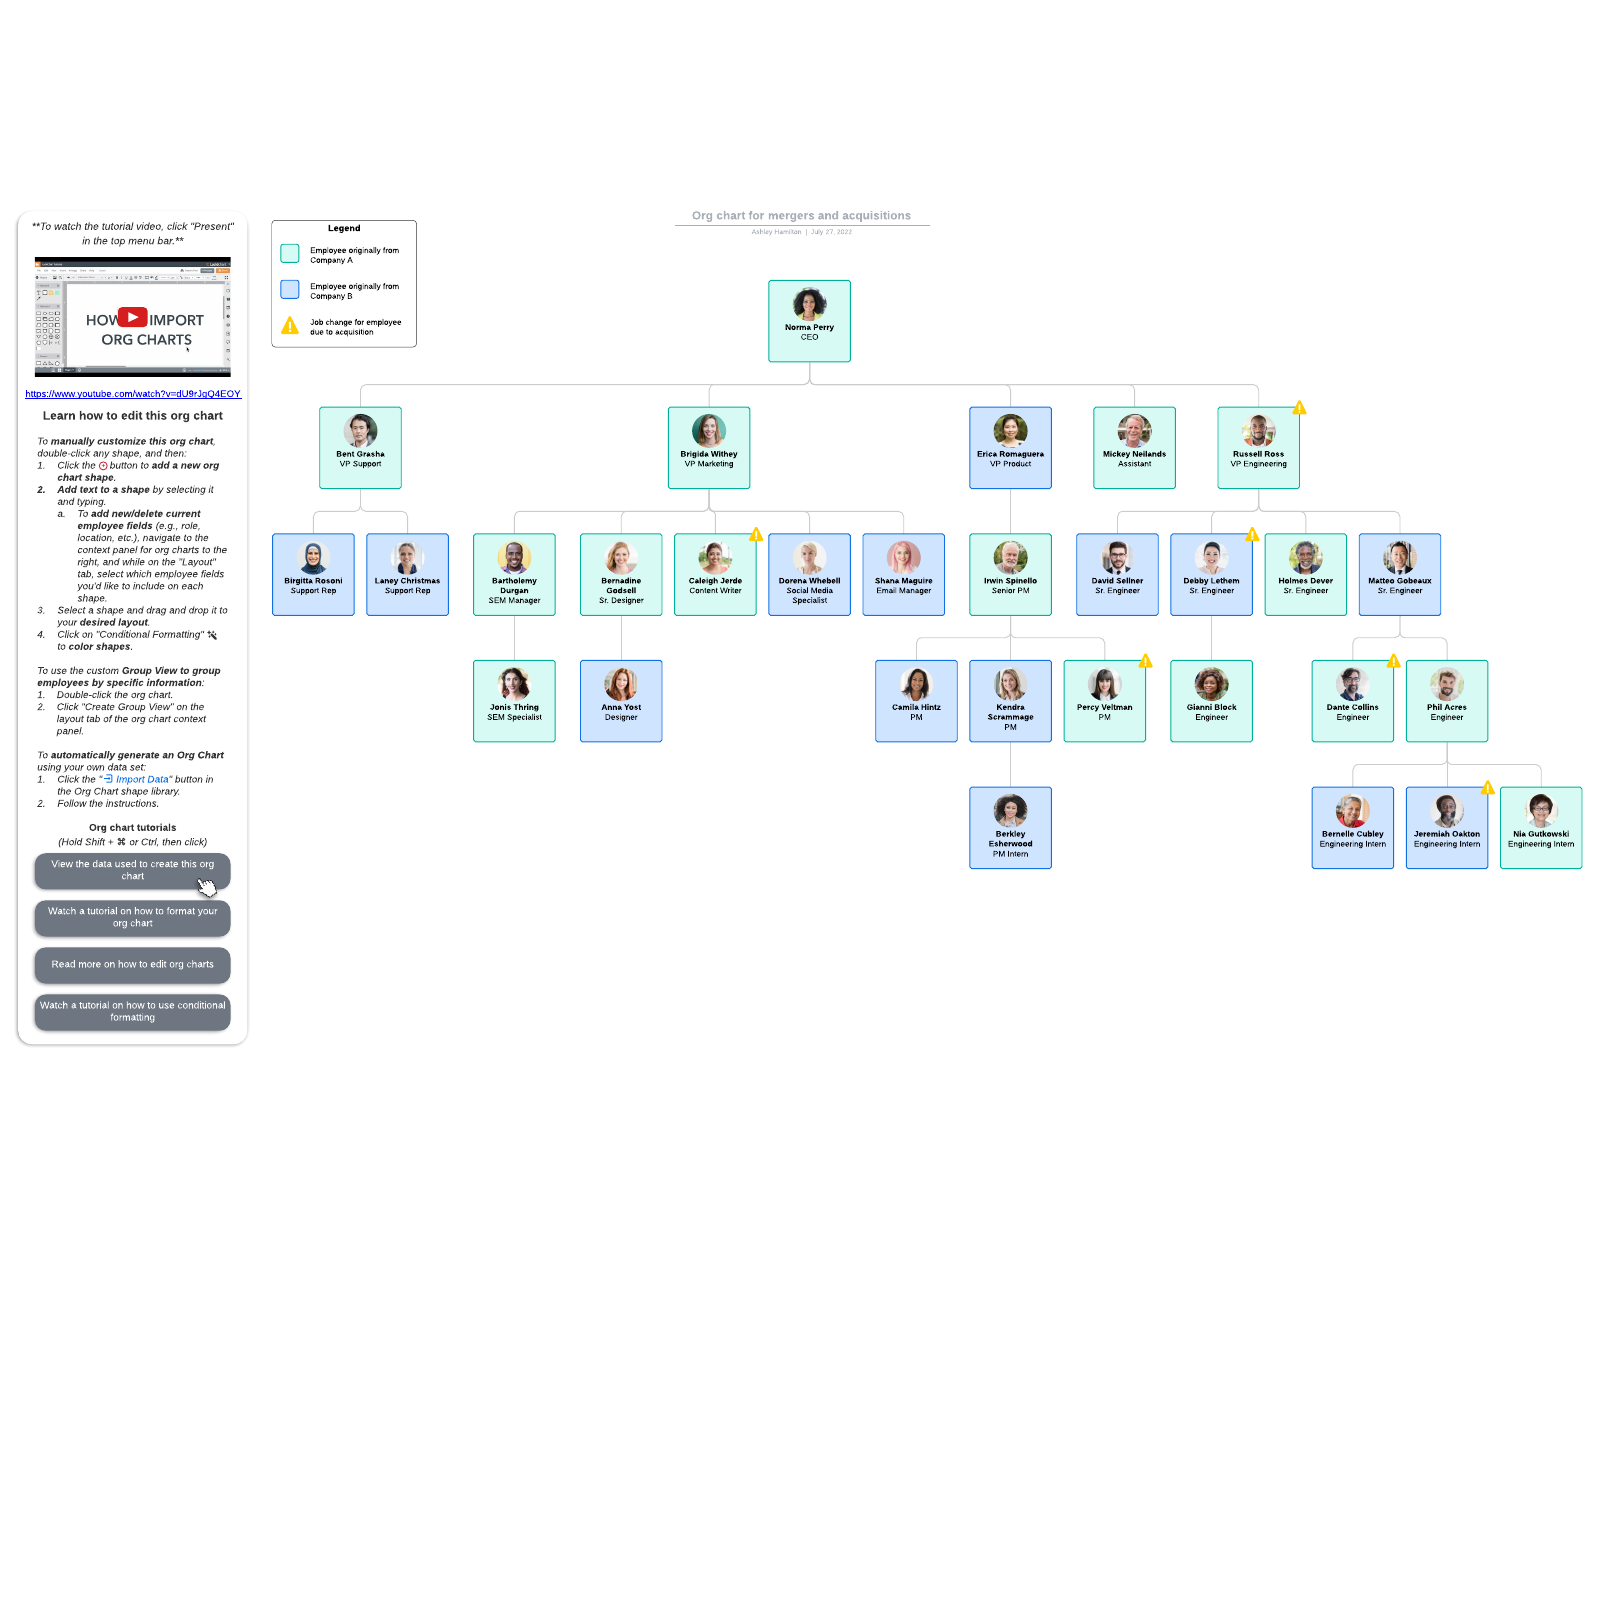 Org chart for mergers and acquisitions